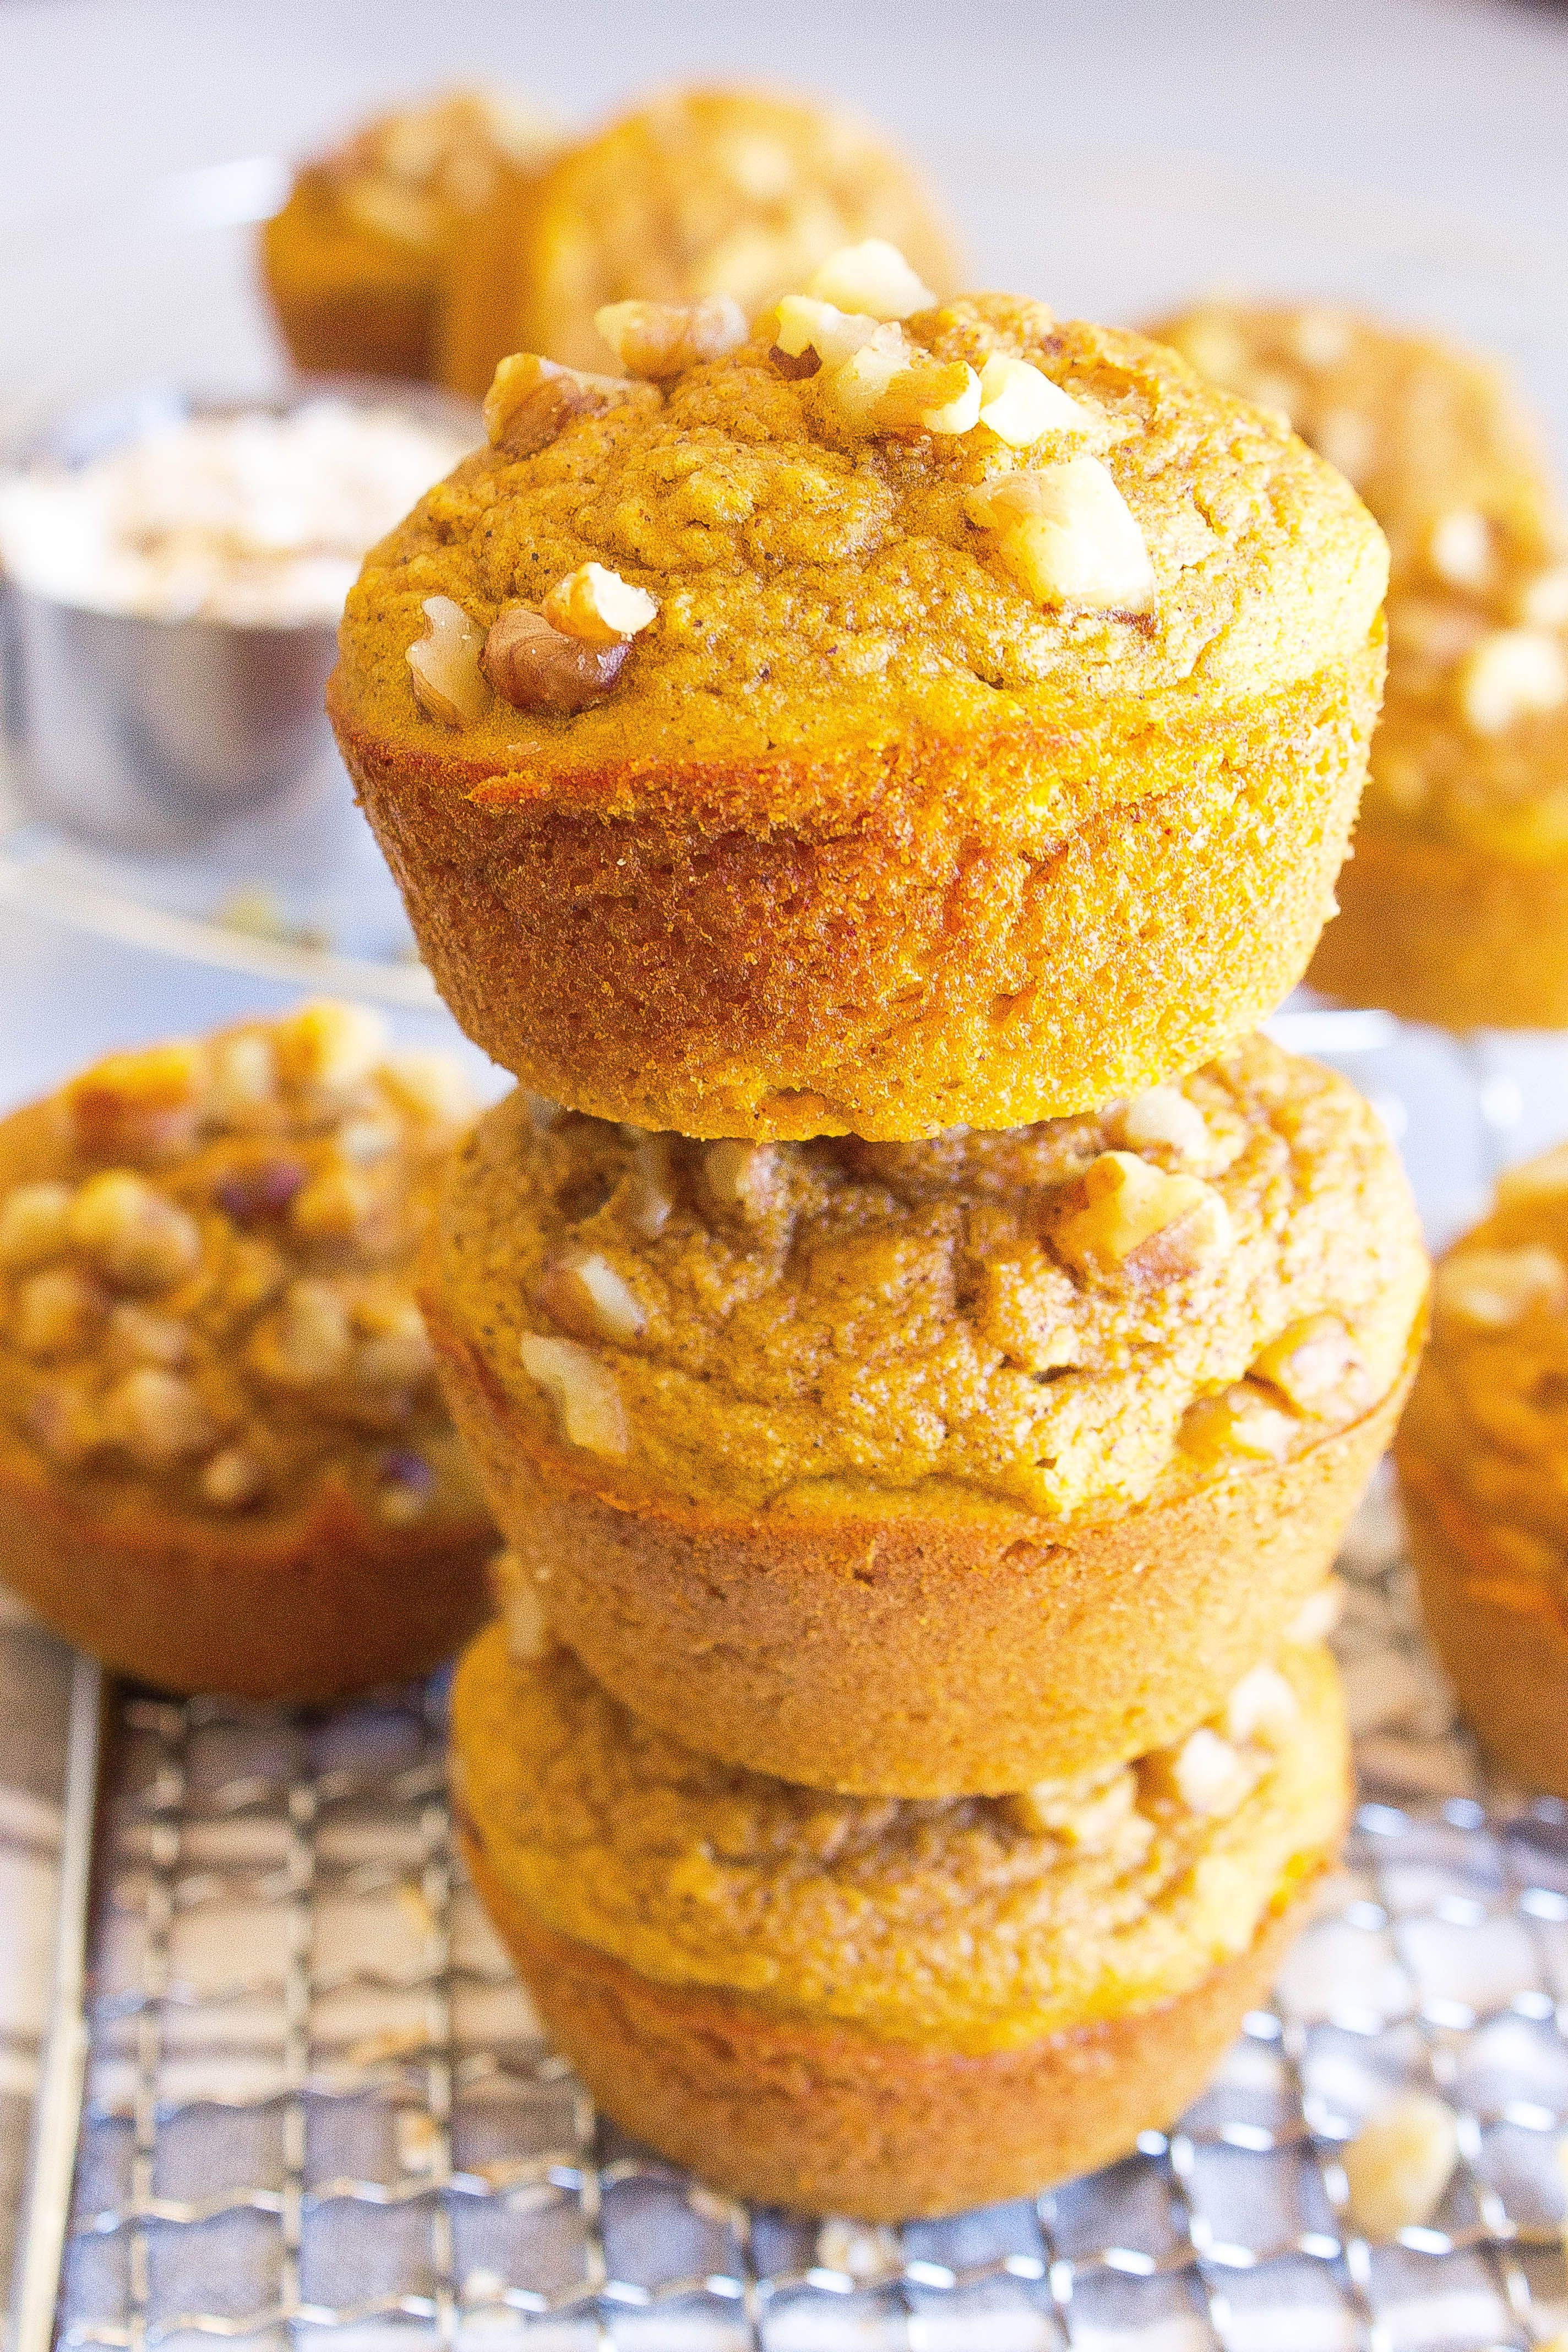 Pumpkin Oat Muffins  Kathryns Kitchen GlutenFree and Healthy These Pumpkin Muffins are naturally slightly sweetened have hints of pumpkin spiceGlutenFree and Healthy Thes...